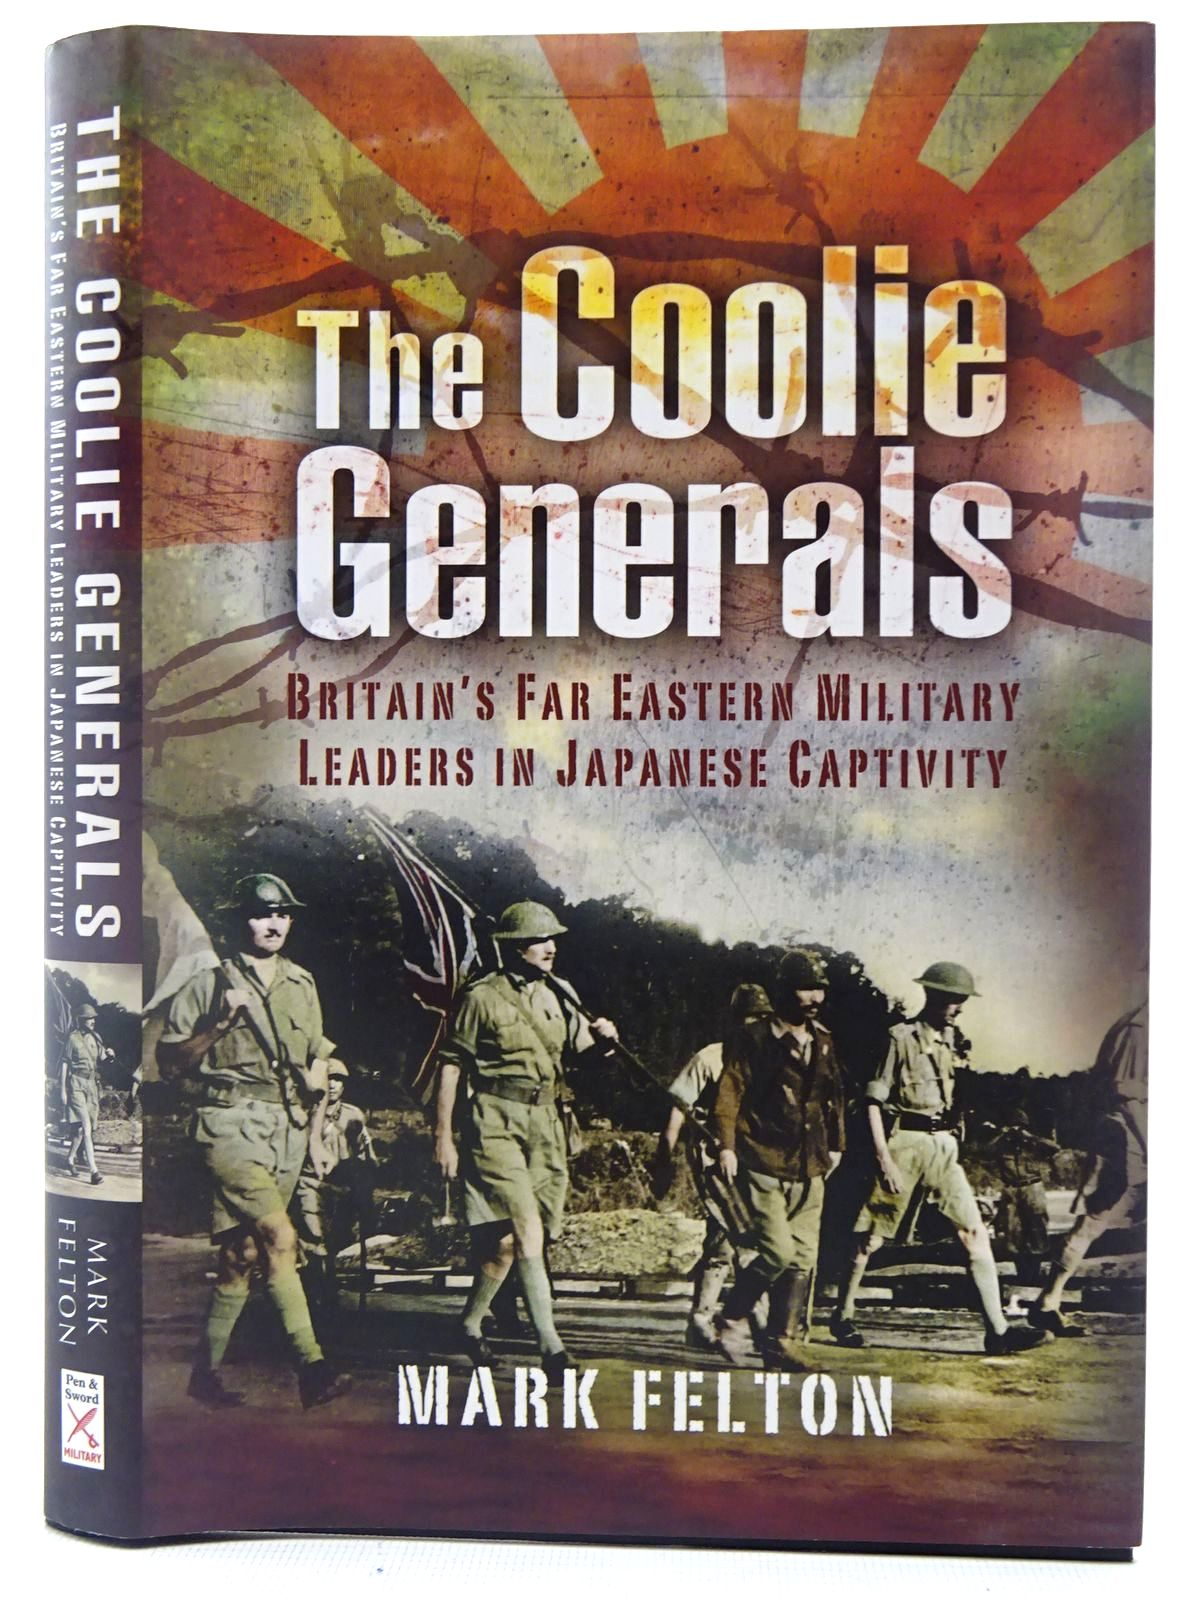 Photo of THE COOLIE GENERALS written by Felton, Mark published by Pen & Sword Military (STOCK CODE: 2127120)  for sale by Stella & Rose's Books